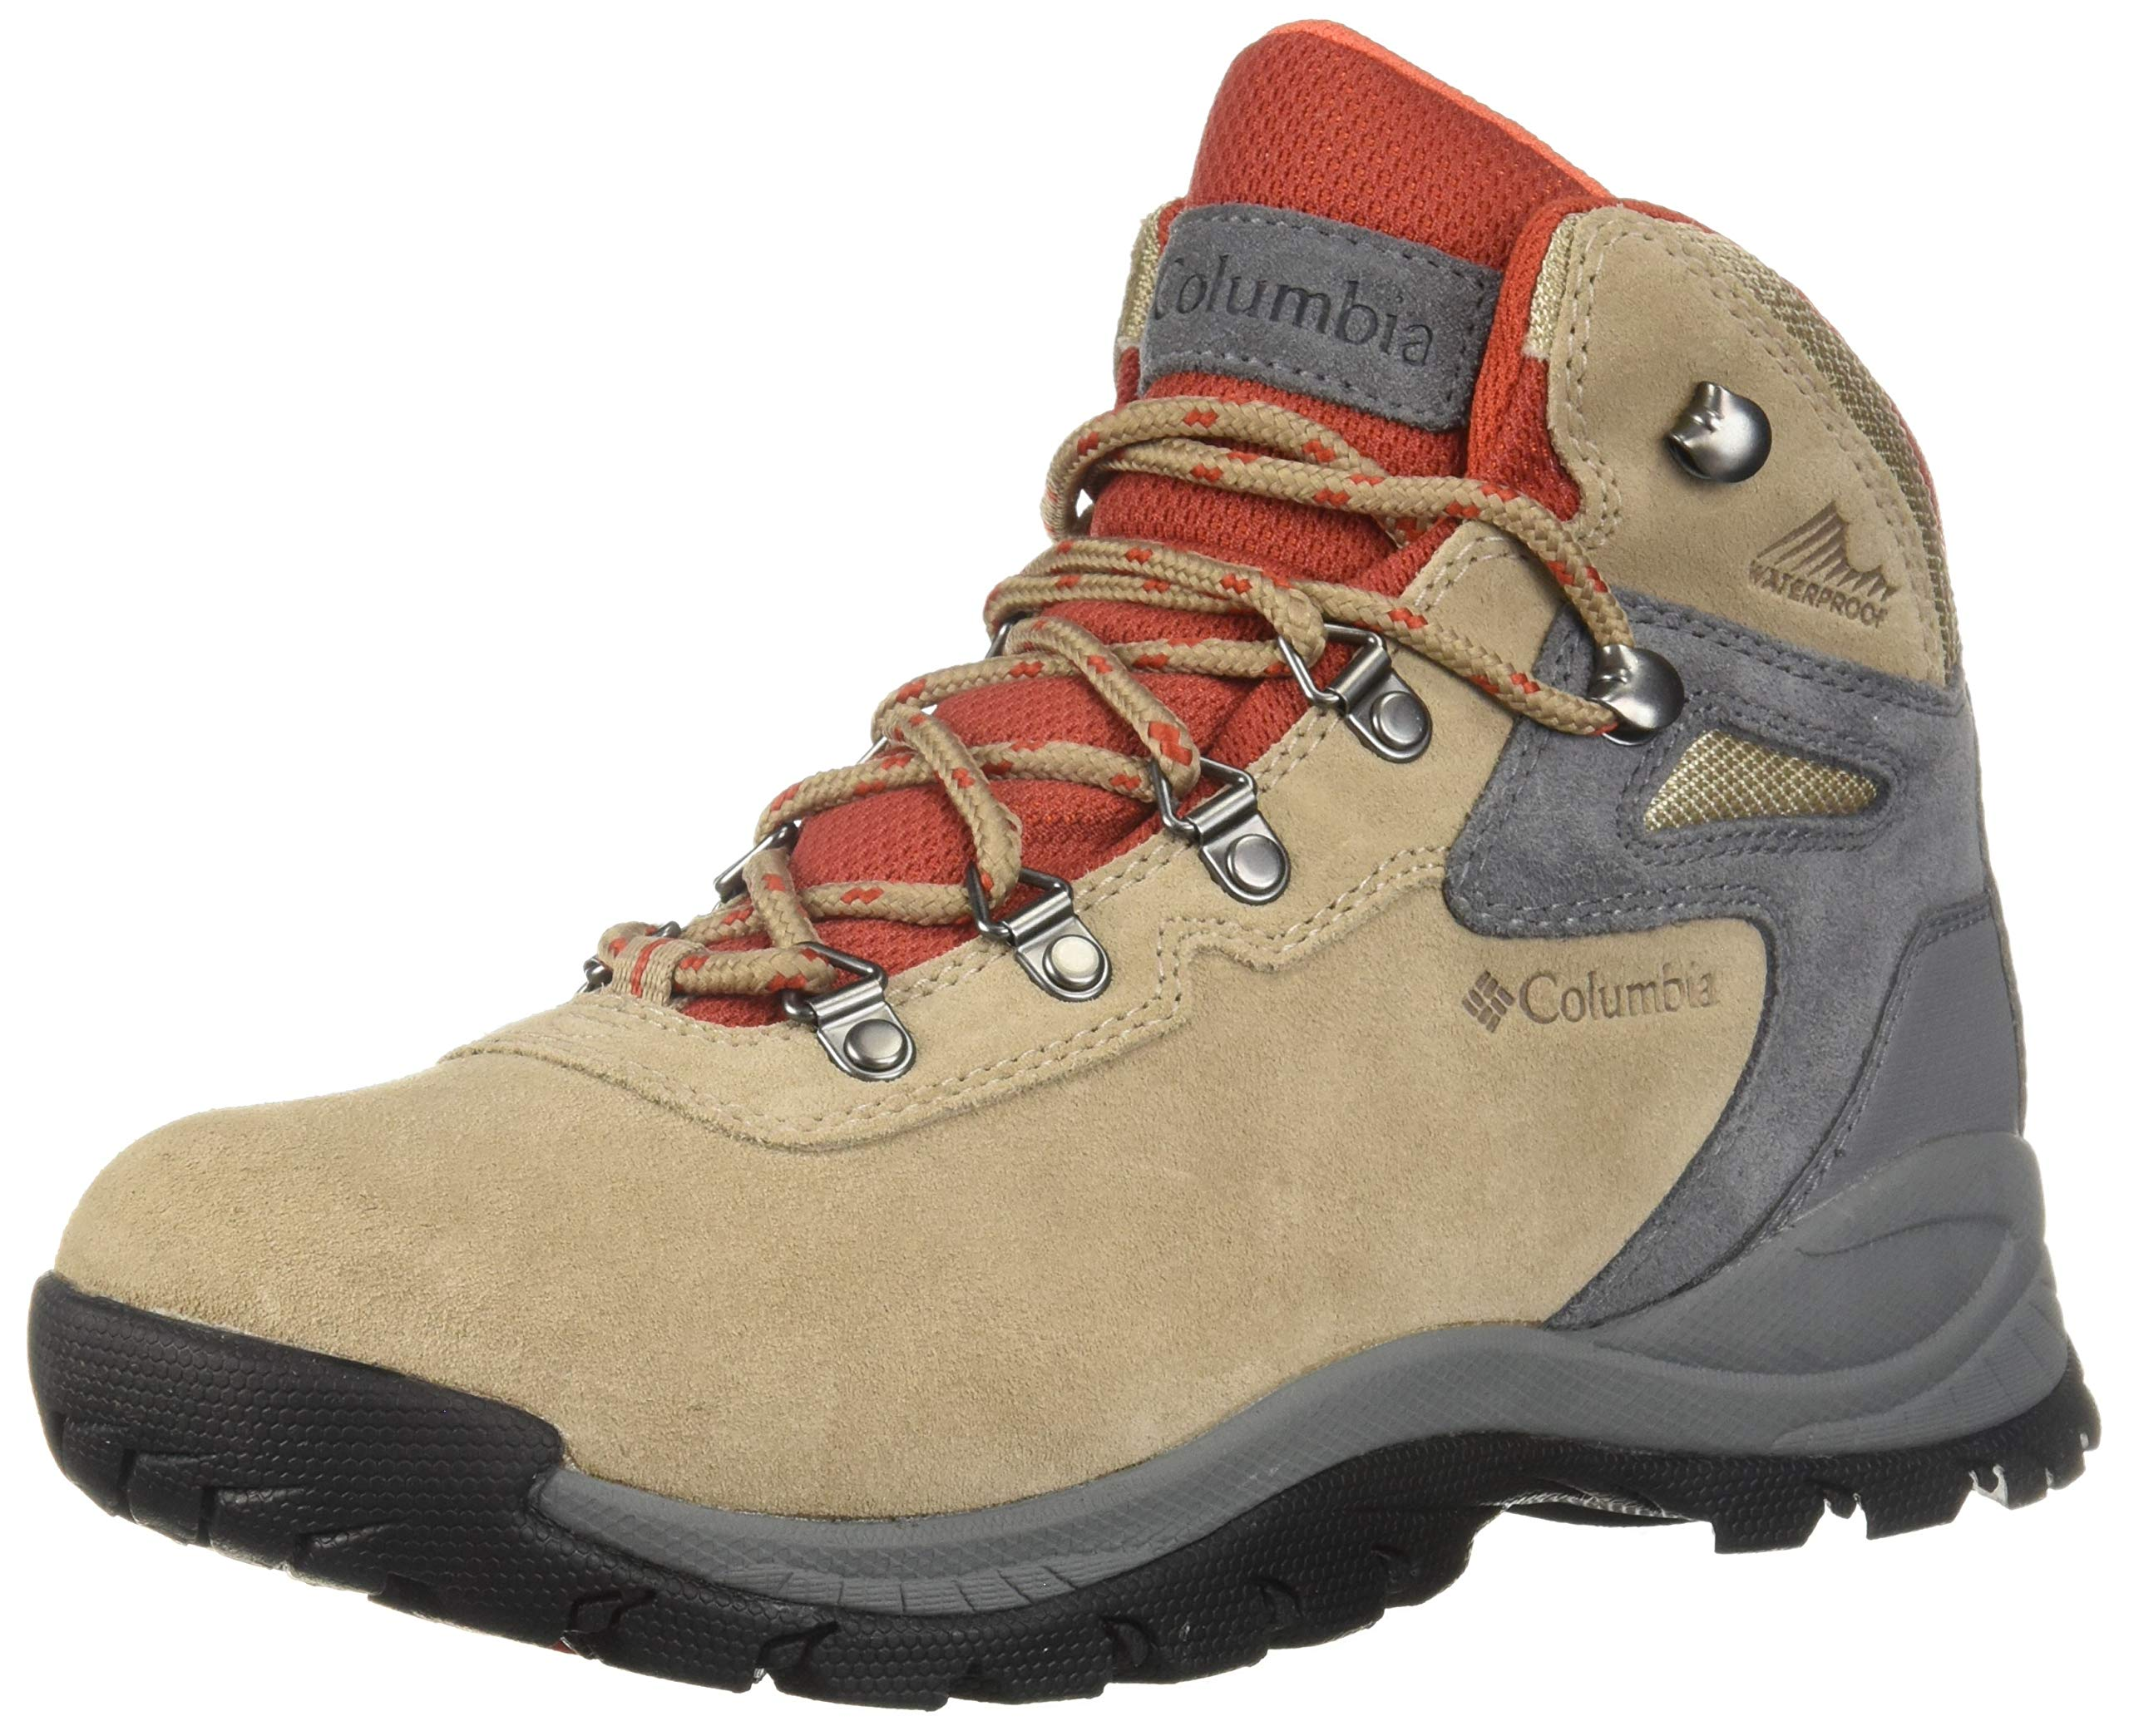 Columbia Women's Newton Ridge Plus Waterproof Amped Hiking Boot, Oxford Tan/Flame, 8 Wide US